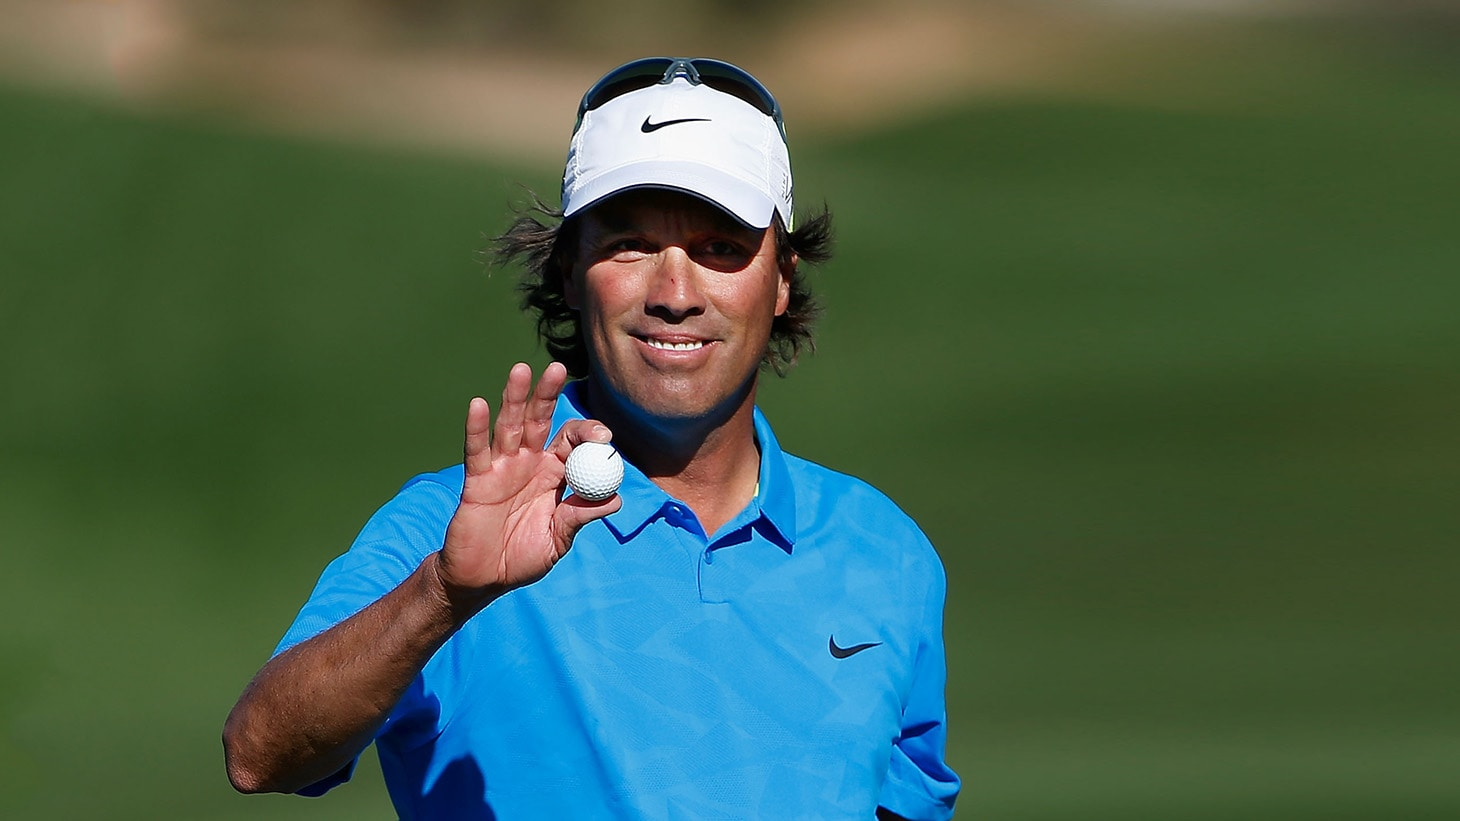 Stephen Ames Cruises to First PGA Tour Champions Victory - Team ...